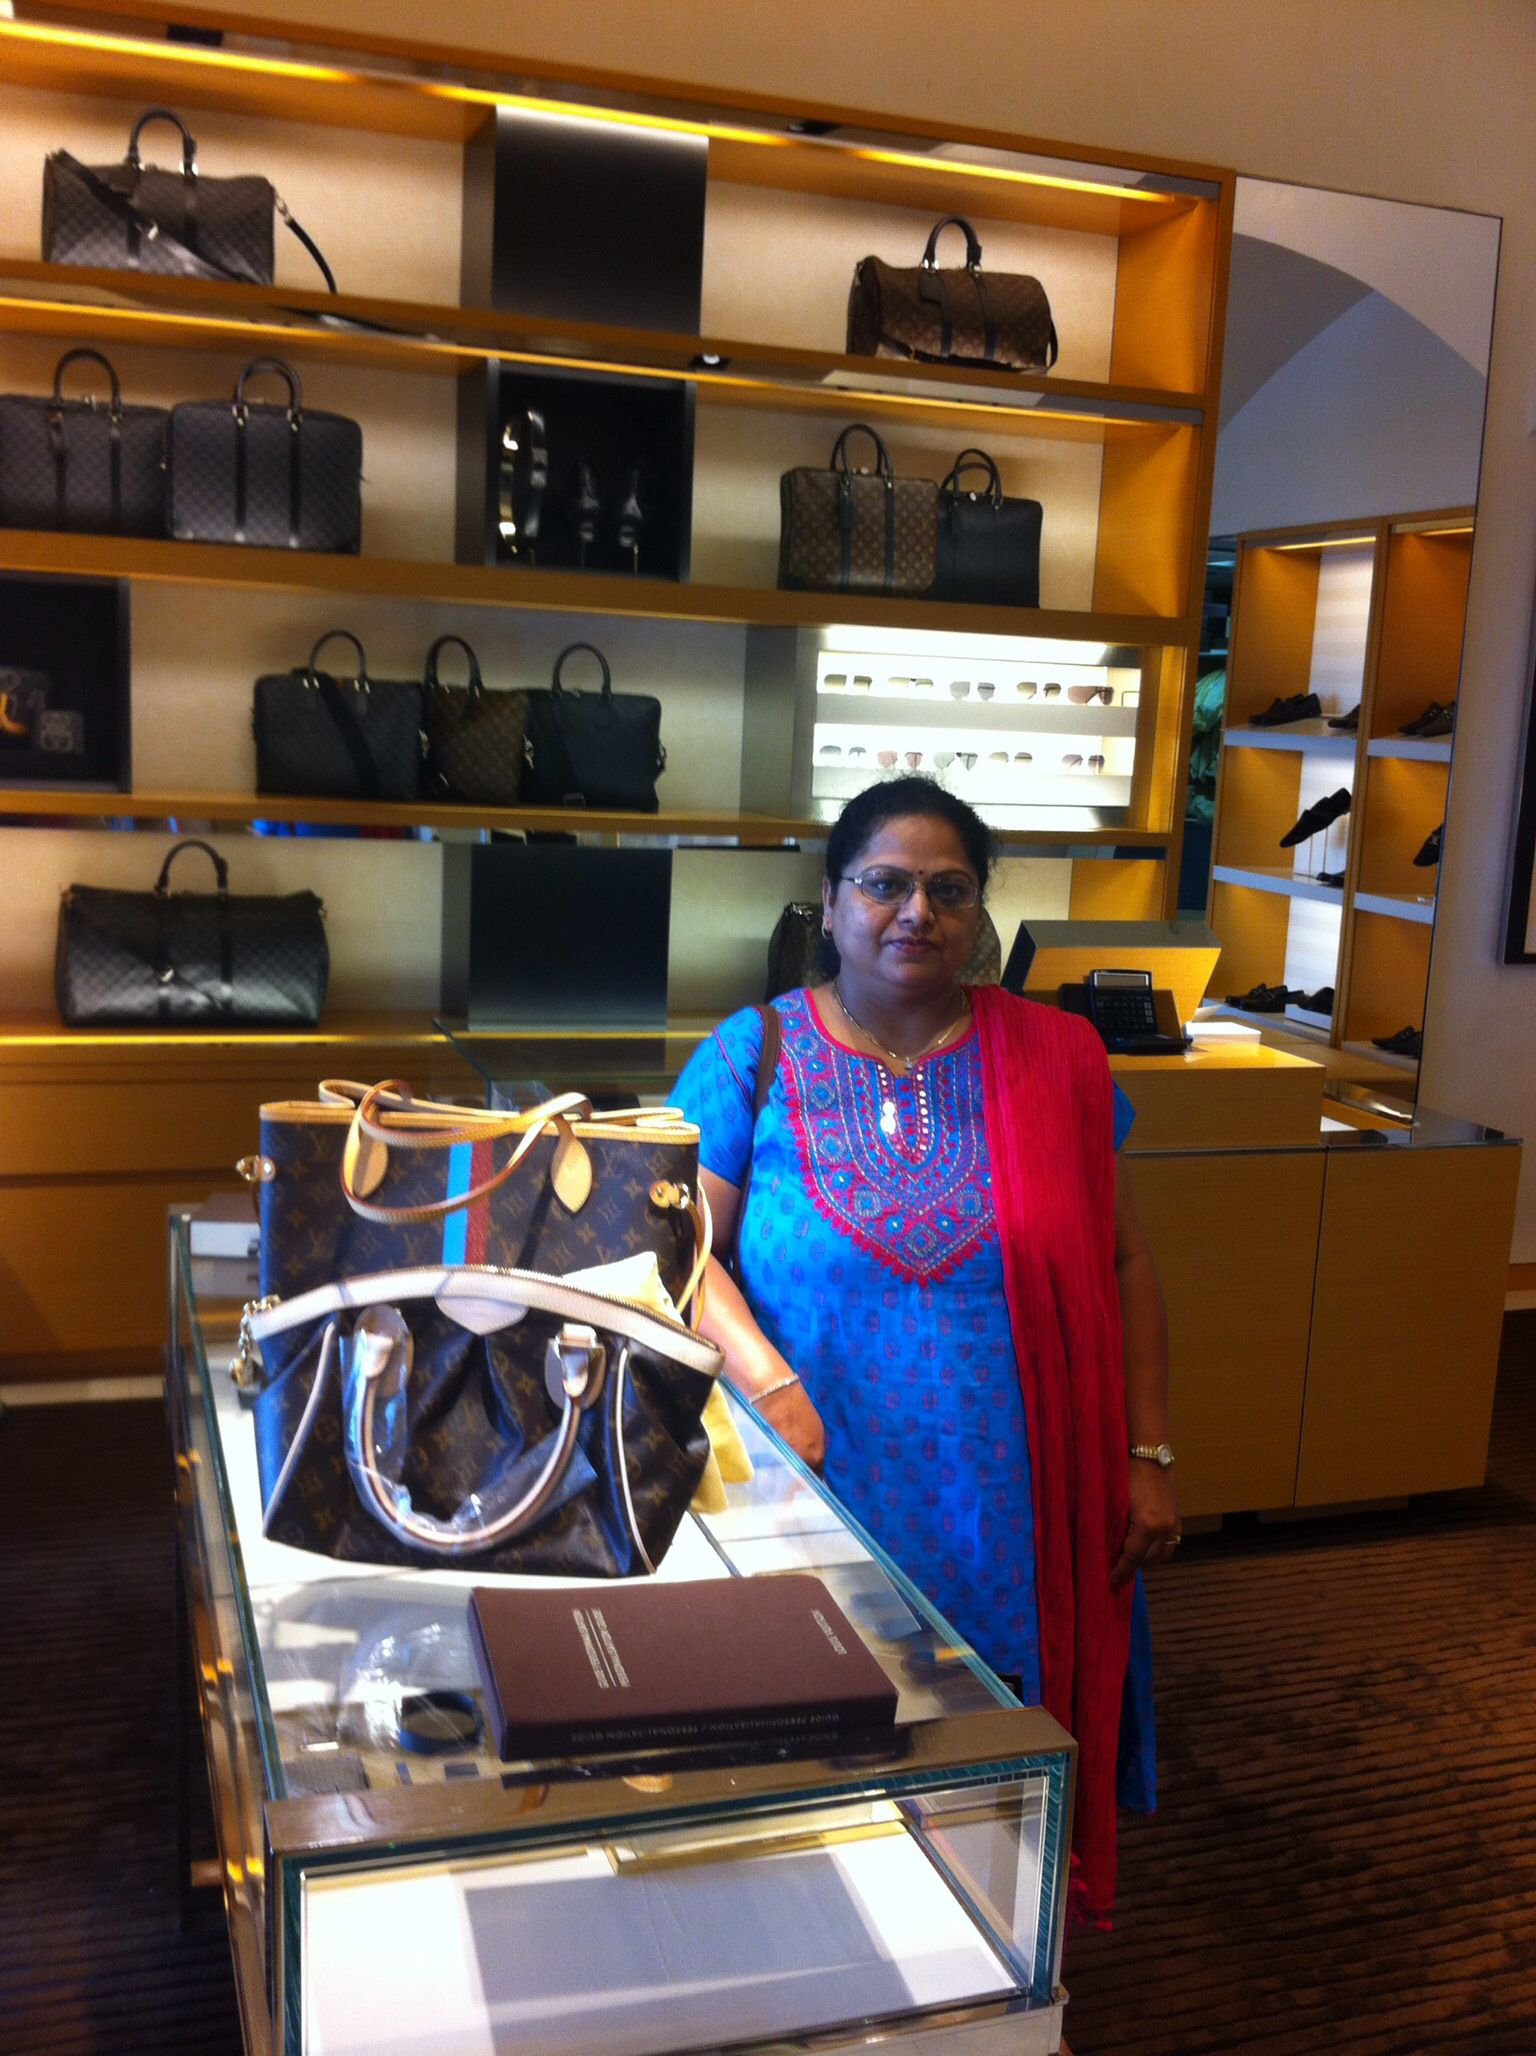 Louis Vuitton First Store In Indian Msu Program Evaluation The official instagram account of louis vuitton. louis vuitton first store in indian